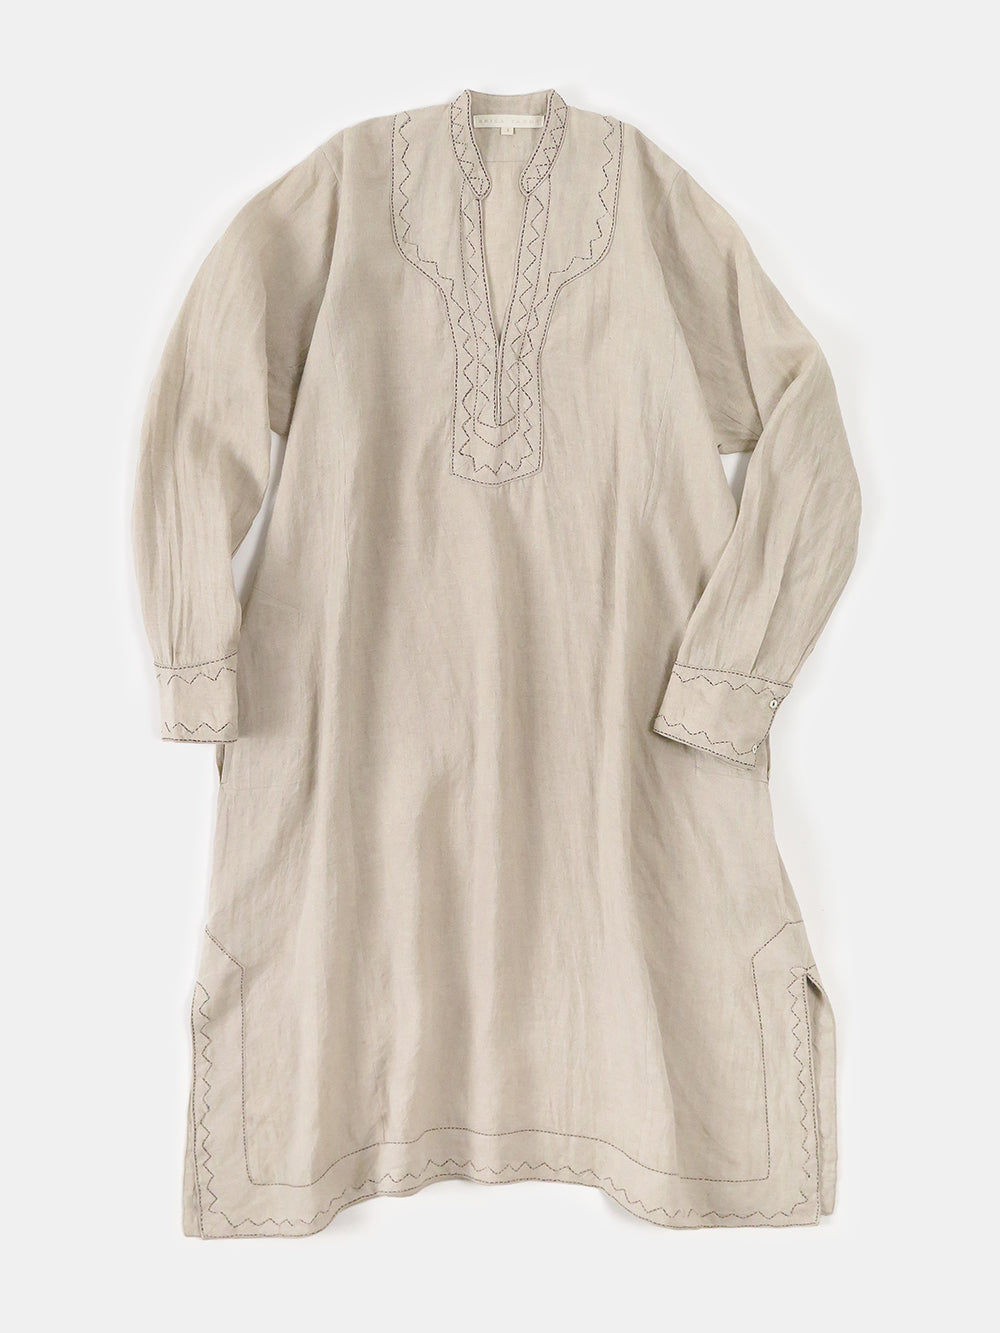 rekha caftan in hand-embroidered natural linen